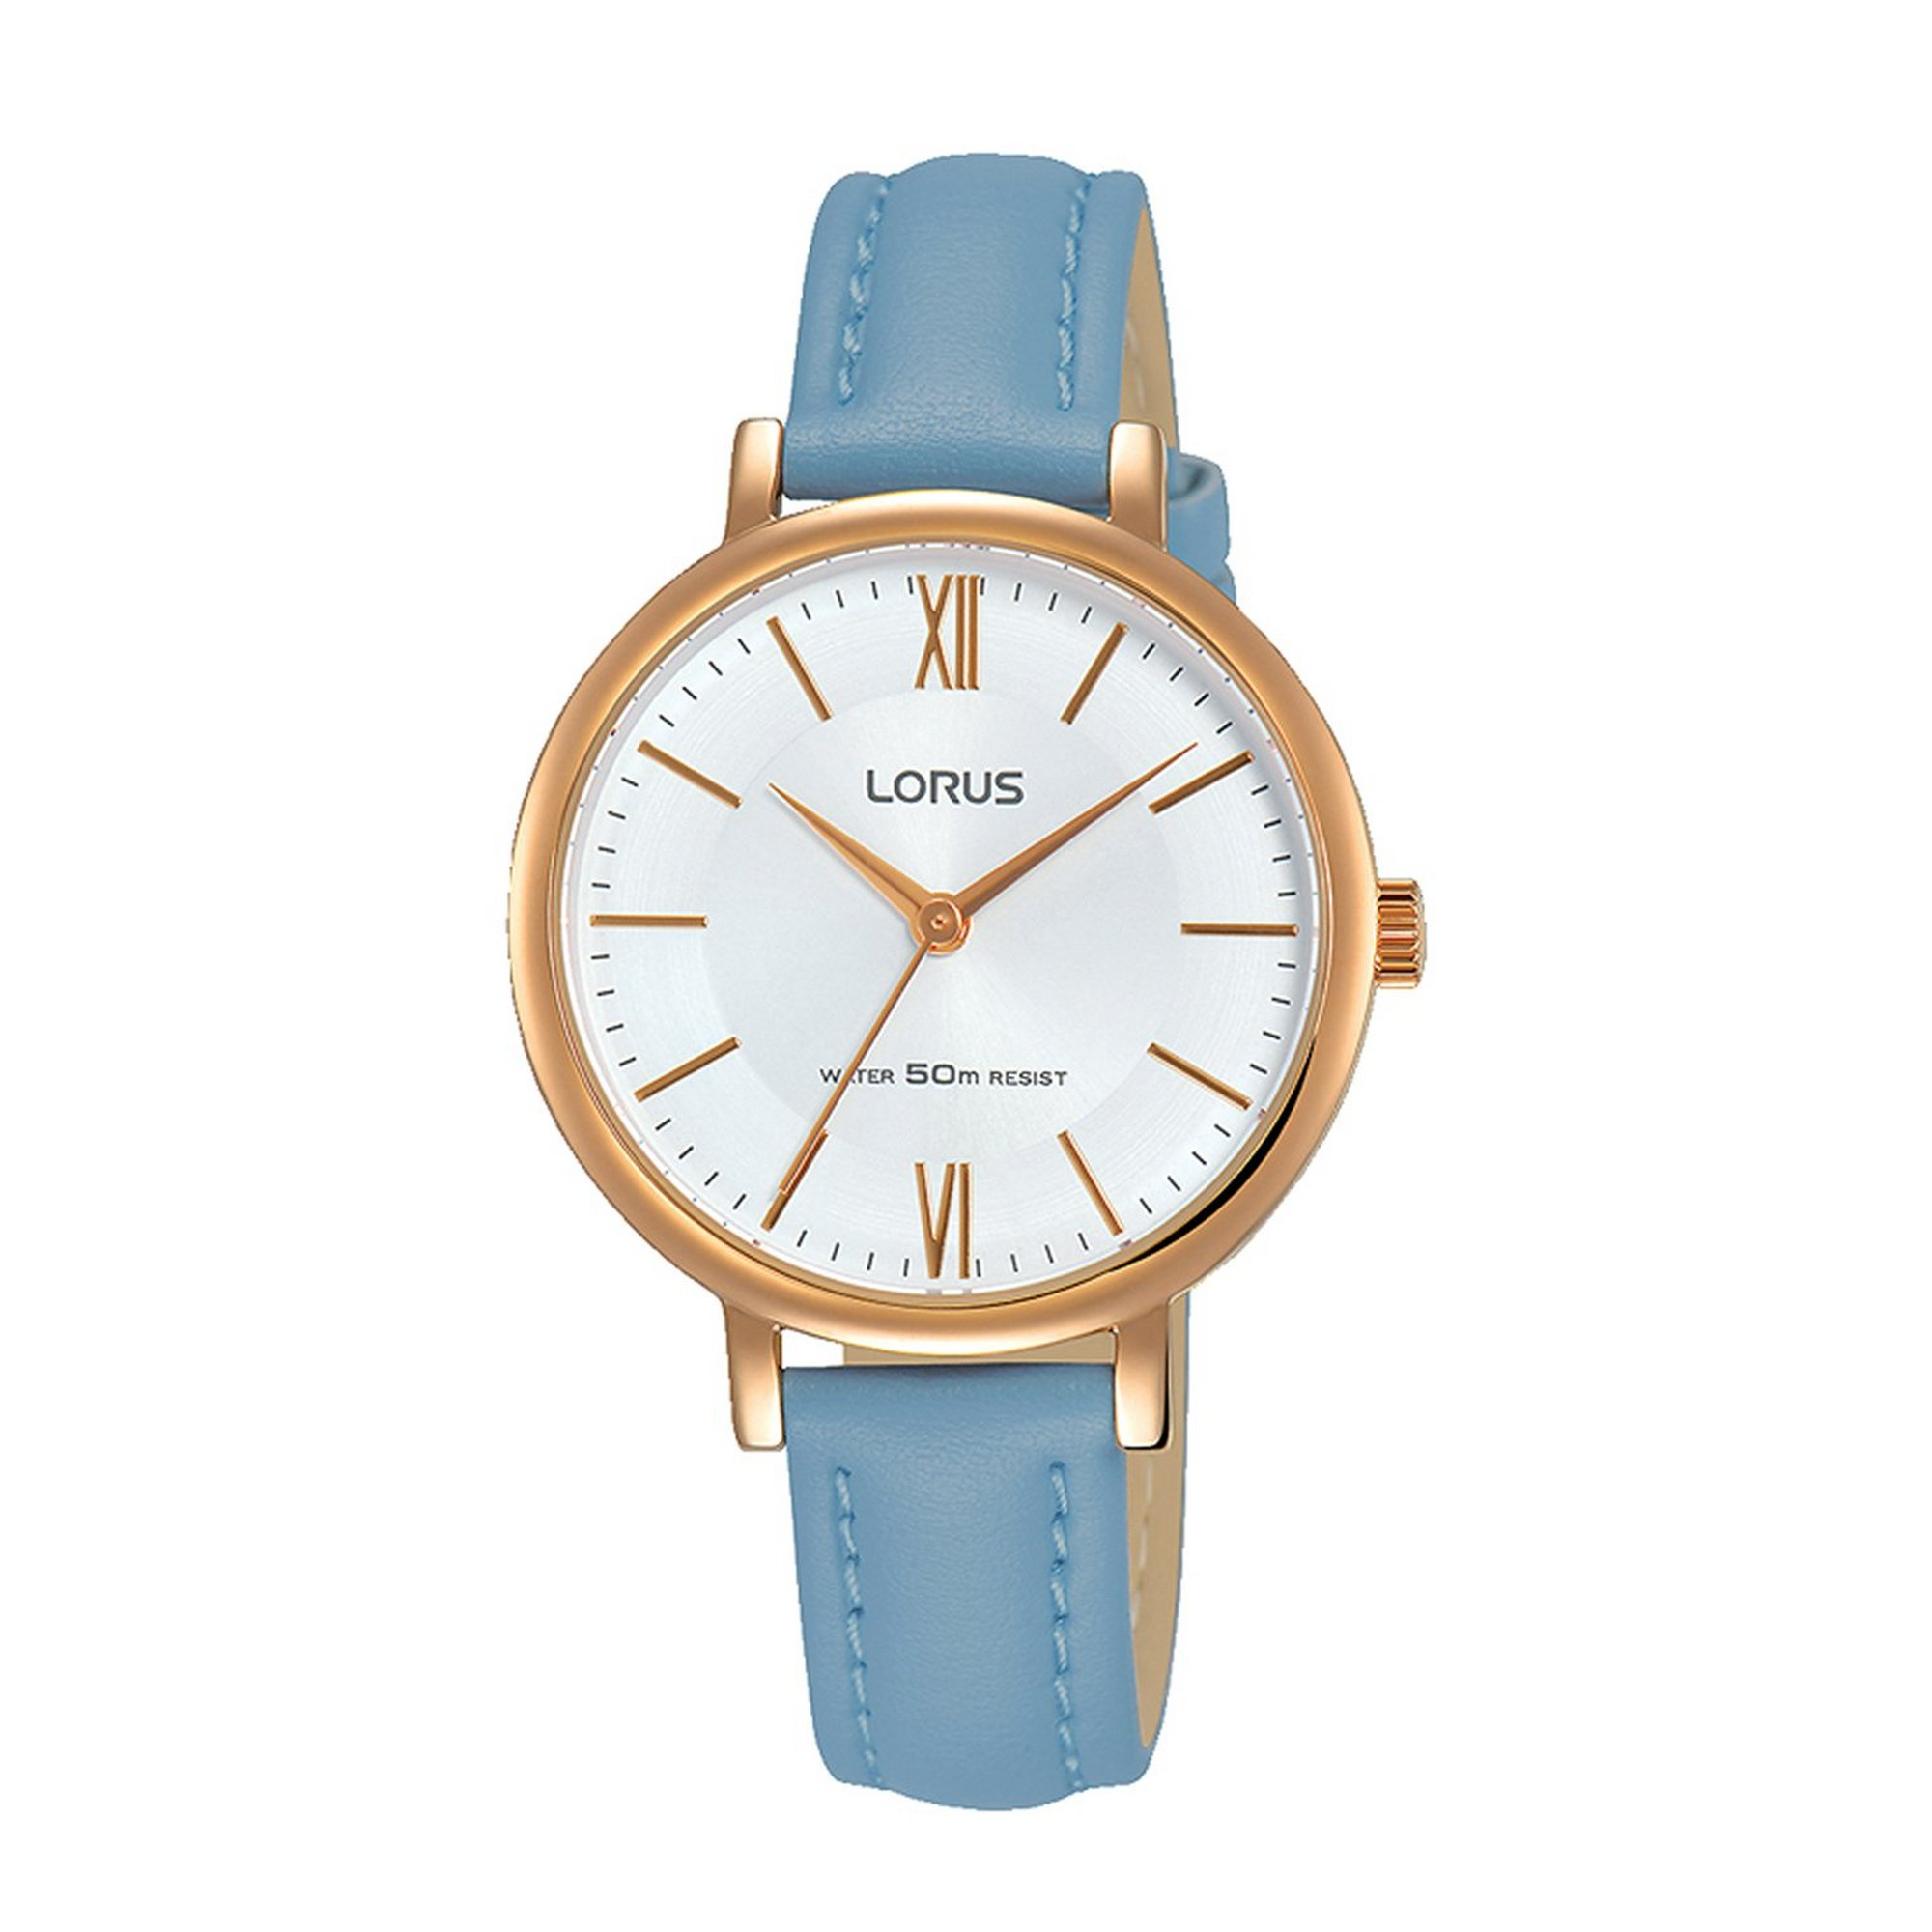 Image of Lorus Elegant Light Blue Leather Strap Watch with Rose Gold Plate...